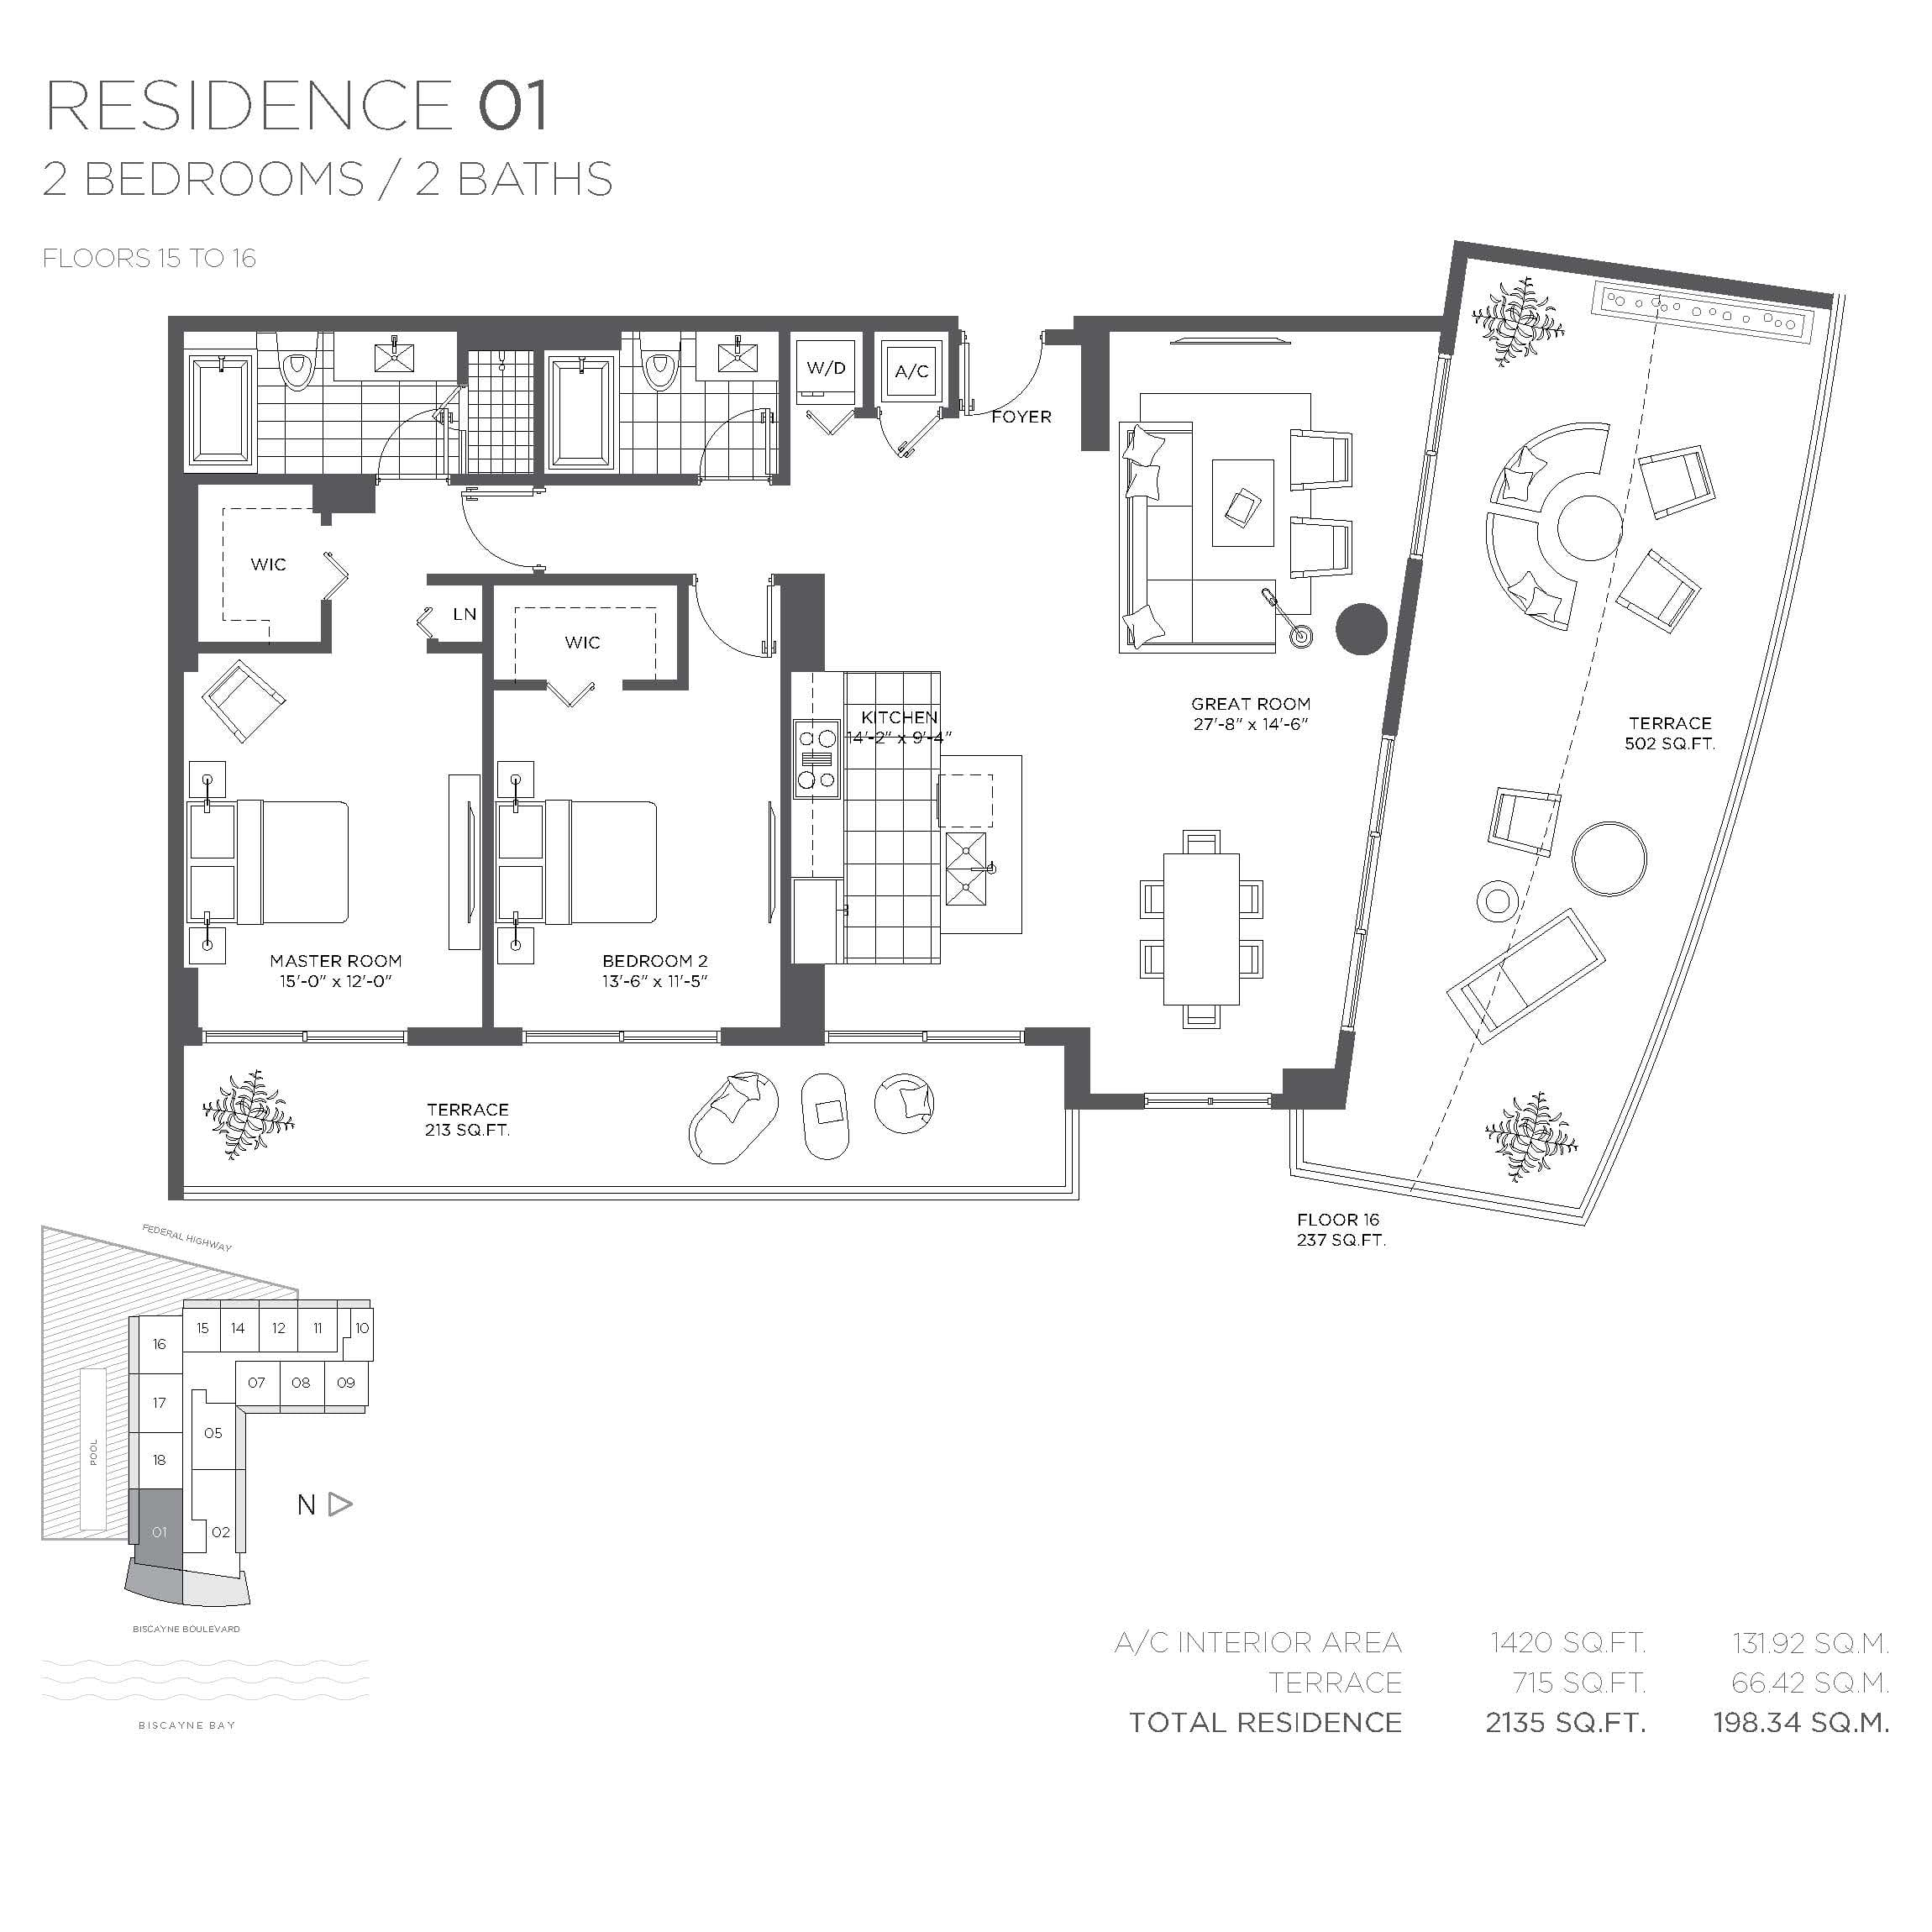 2BED-01_UPPER_FLOOR